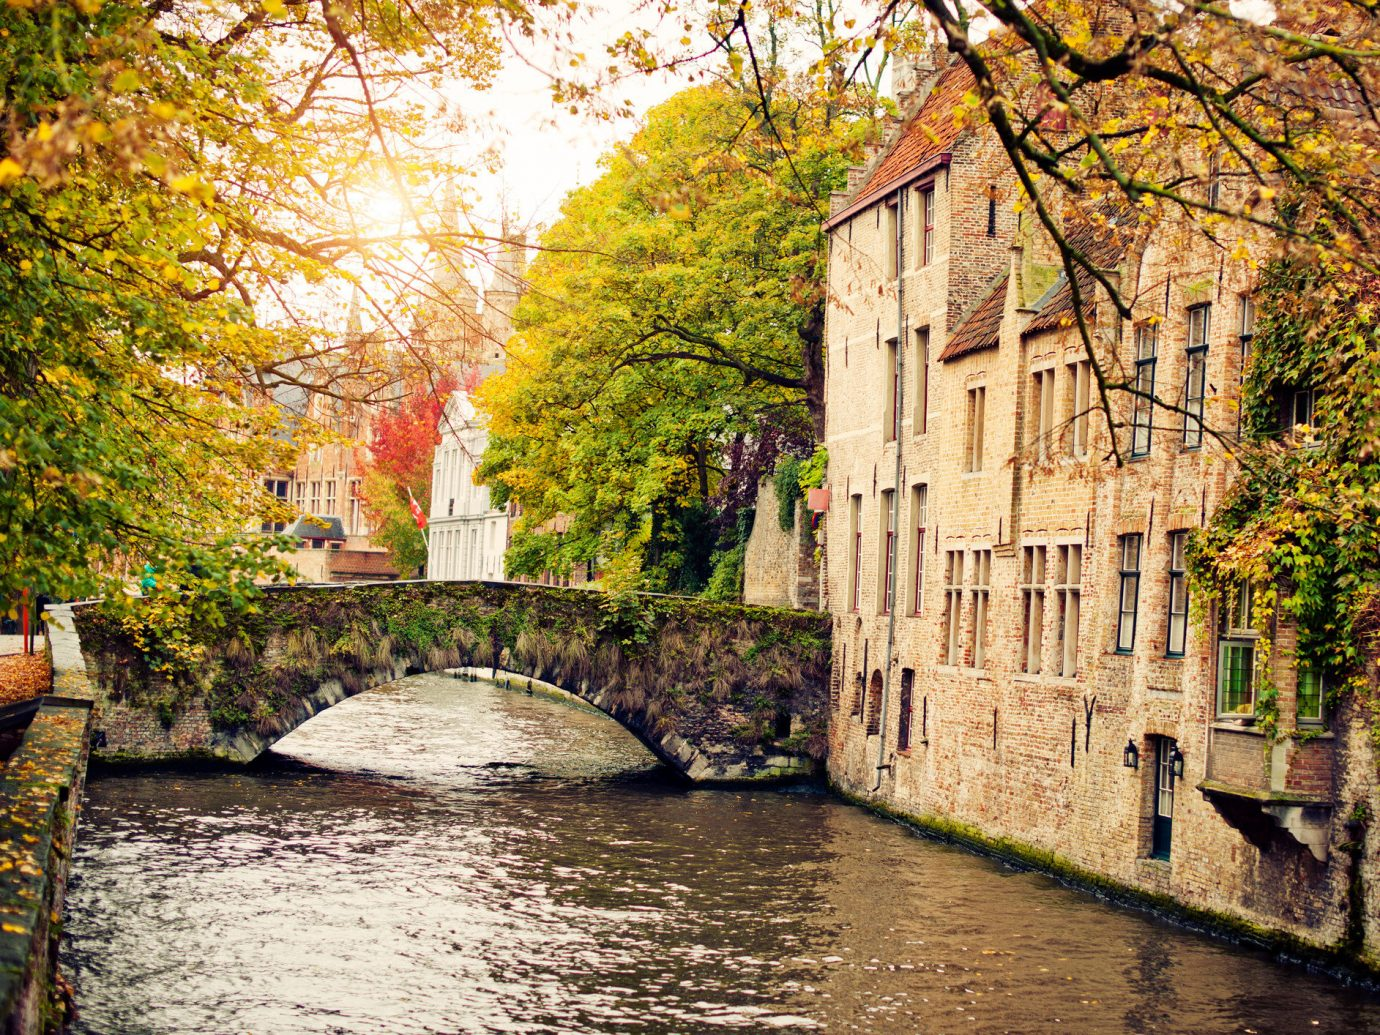 Trip Ideas tree outdoor water Canal waterway Town River autumn season leaf moat rural area flower Village reflection ditch surrounded stone wooded